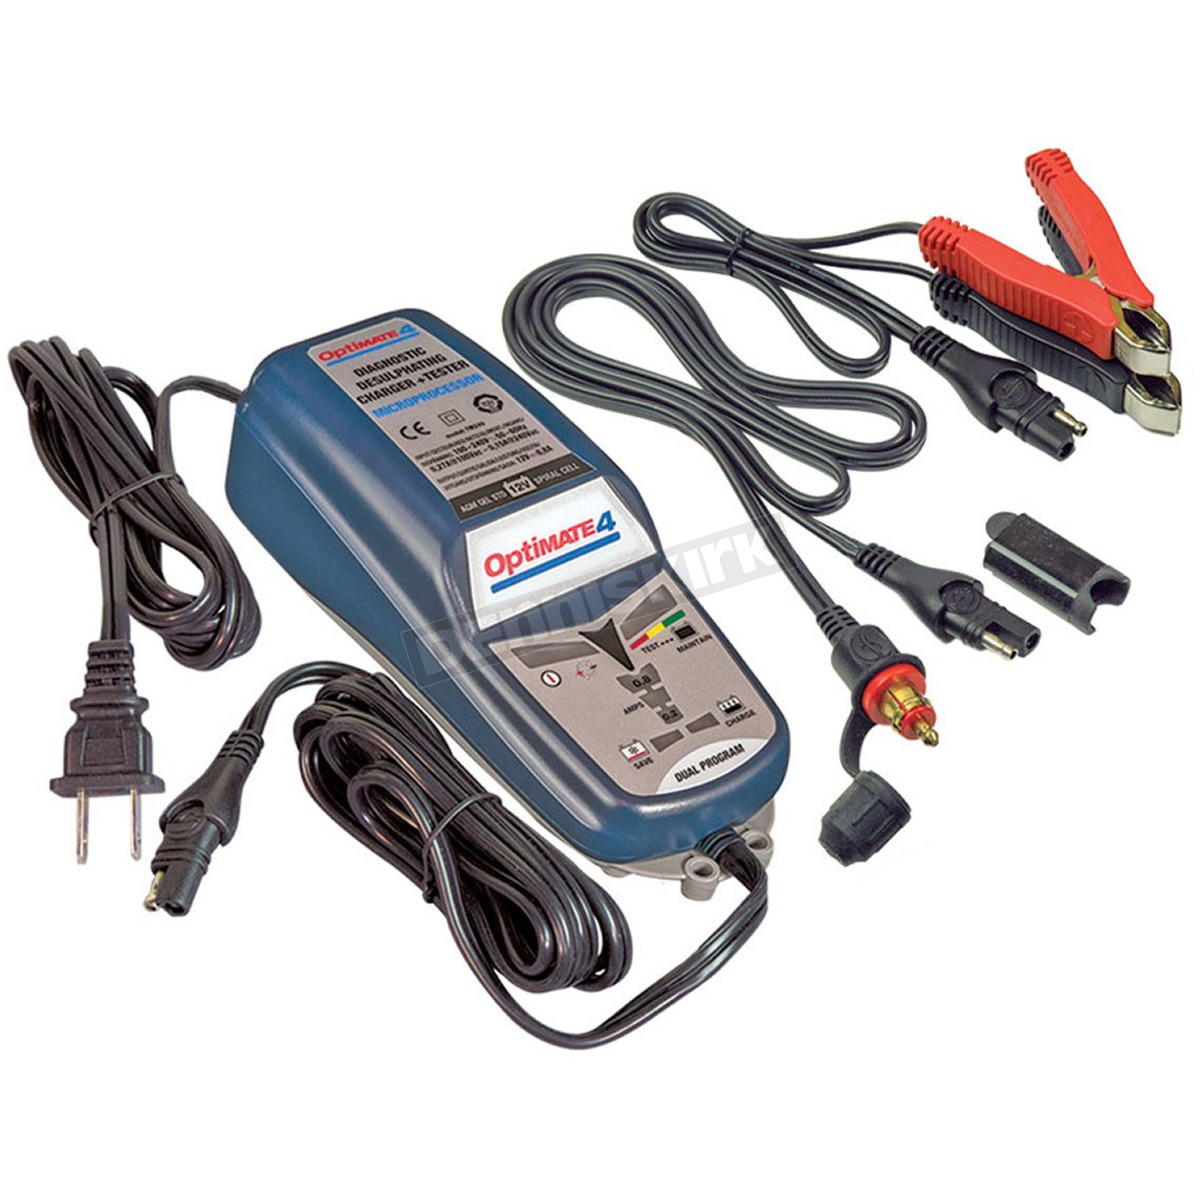 Optimate 4 Dual Program CAN-bus Edition Battery Charger for BMW - TM351